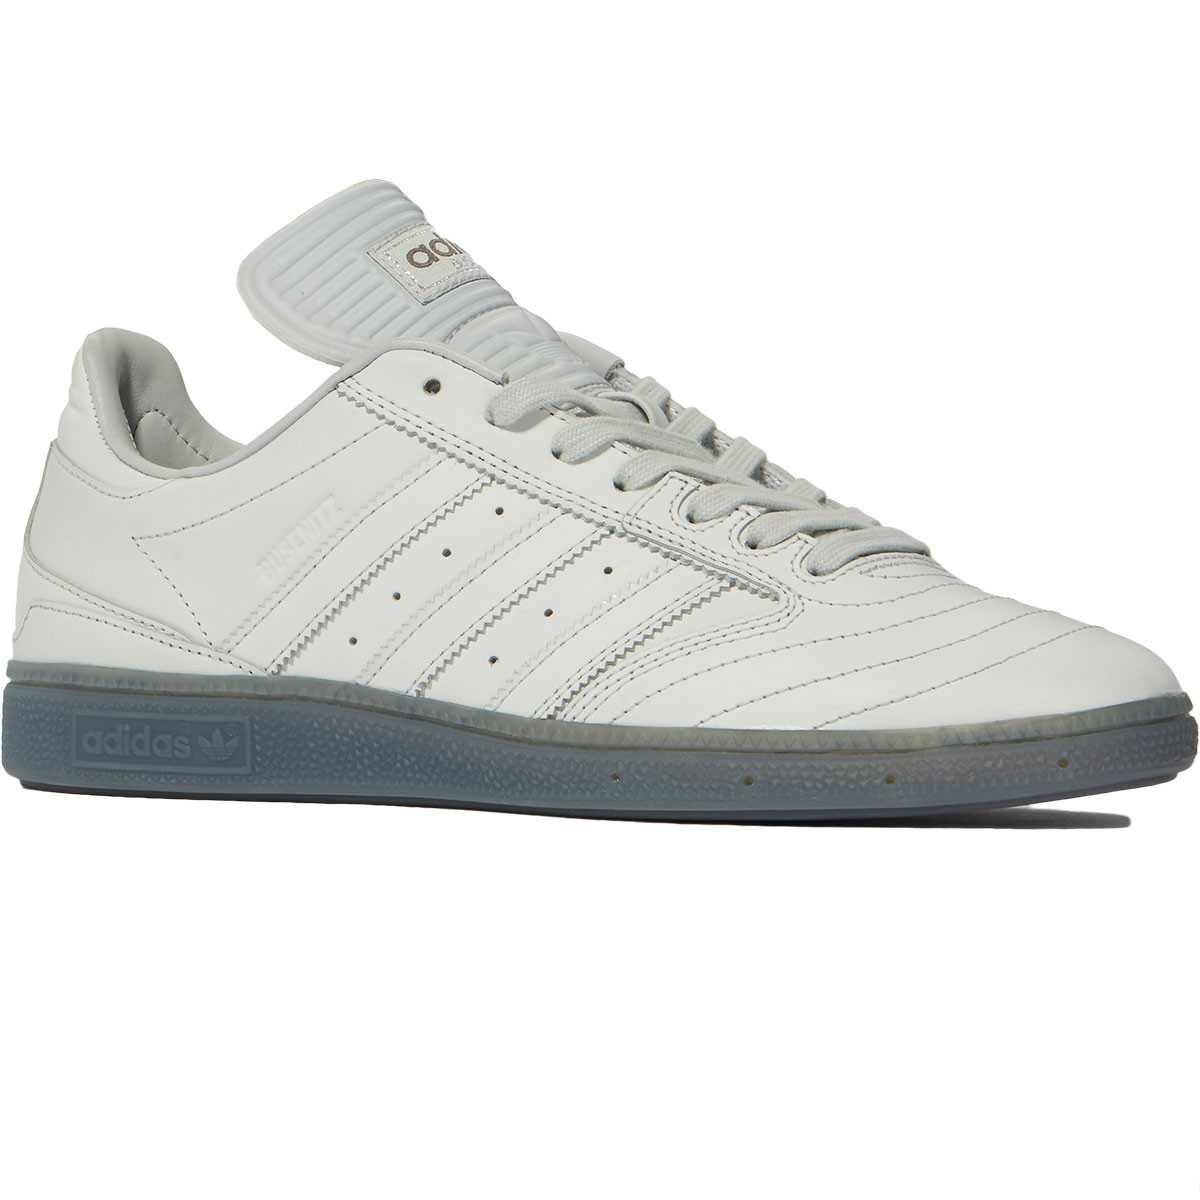 super popular 9de77 2a445 Adidas Busenitz Pro 3rd And Army Shoes - Supplier Grey Granite - 8.0